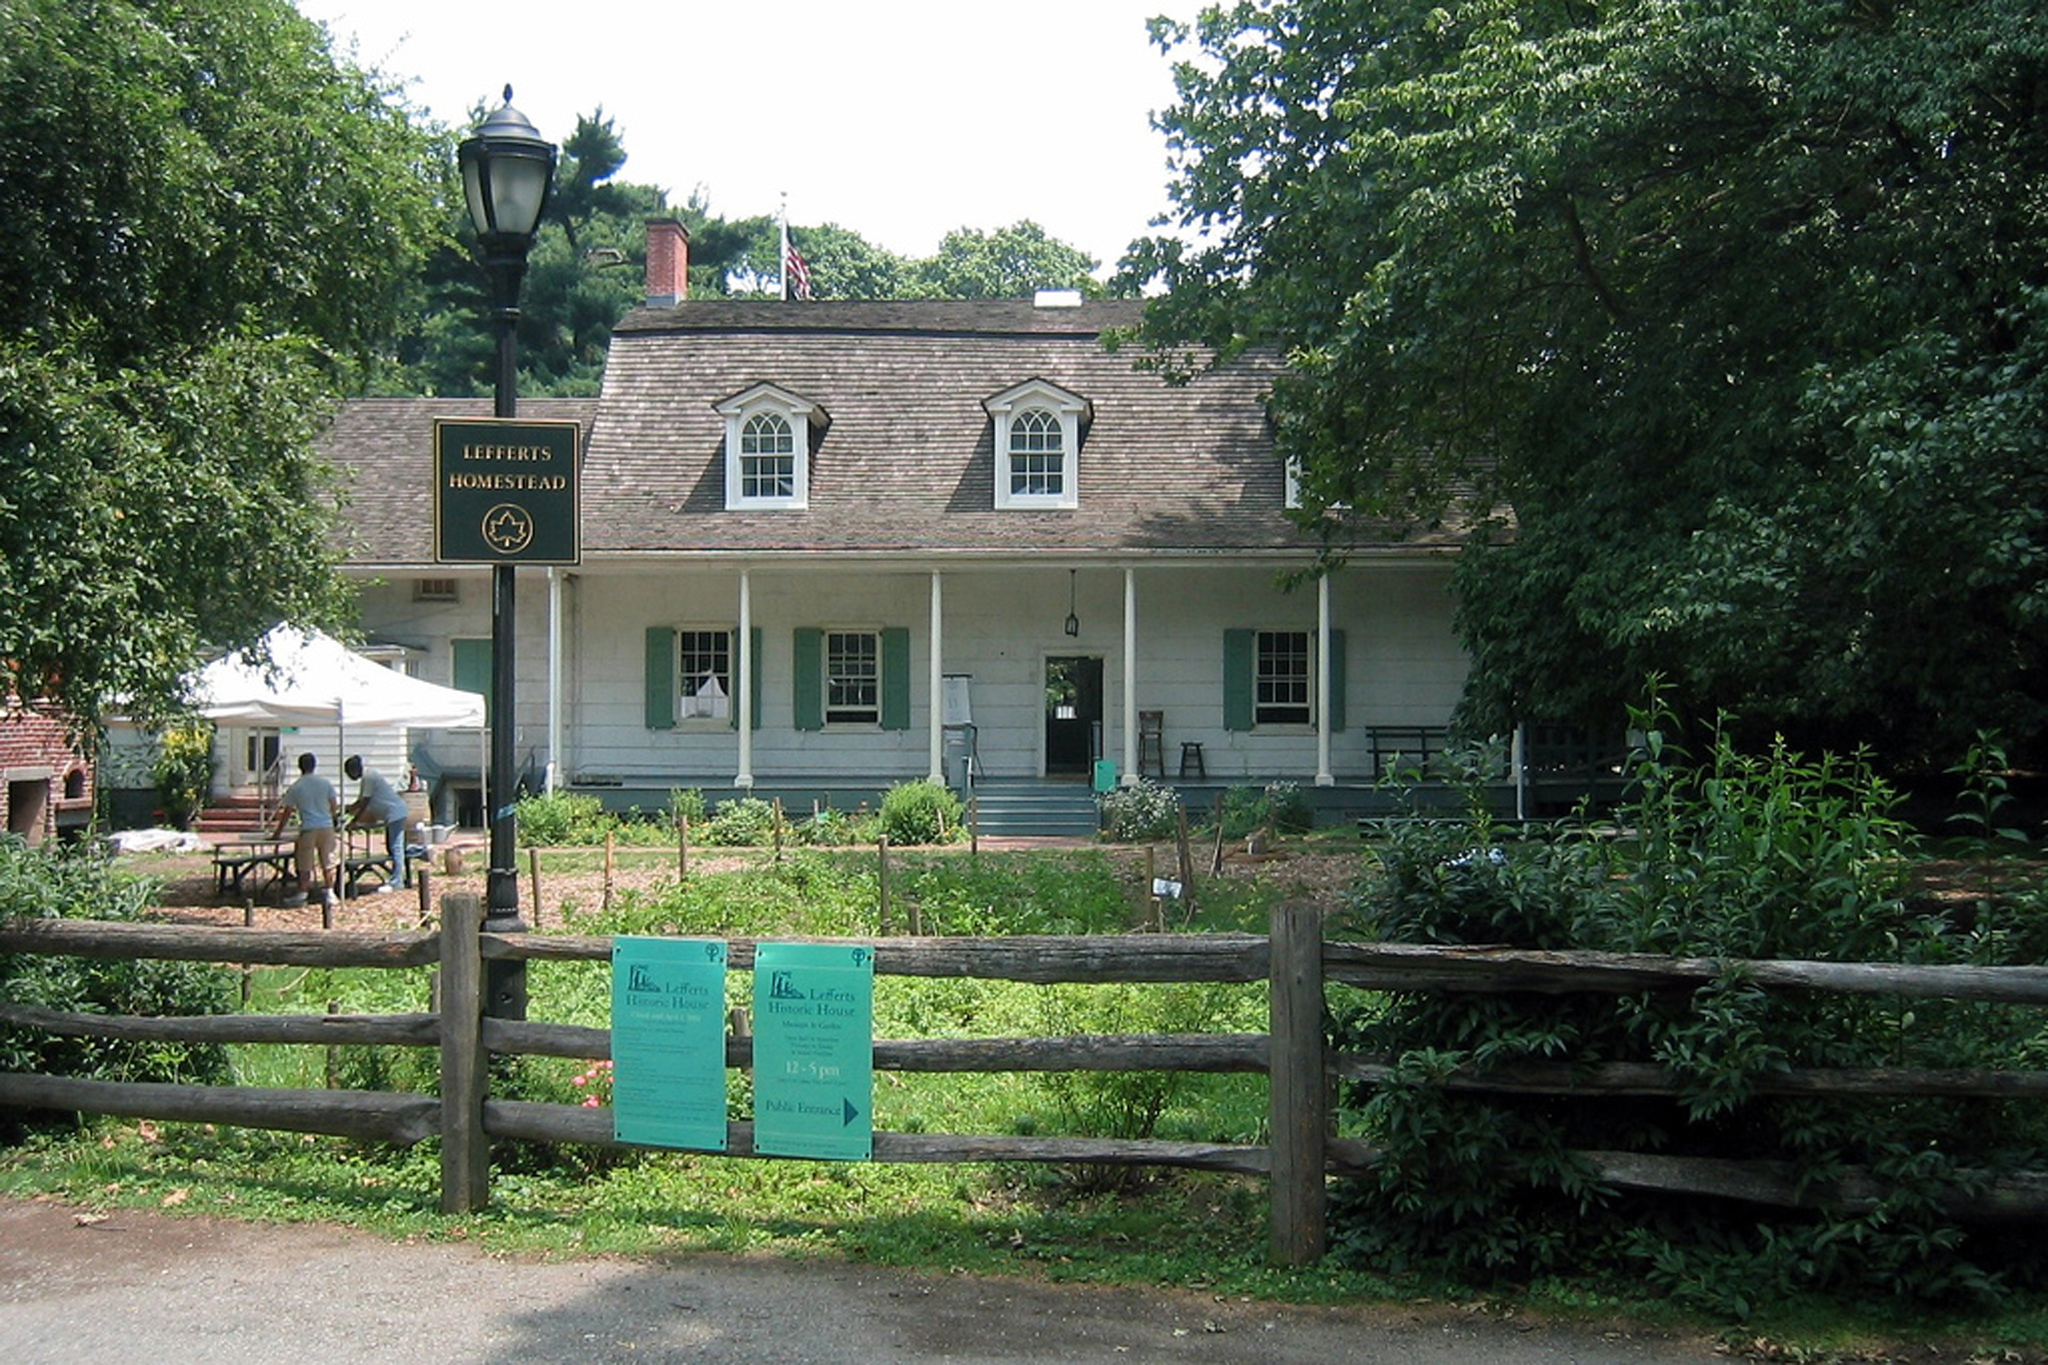 Go back in time at the Lefferts Historic House Museum